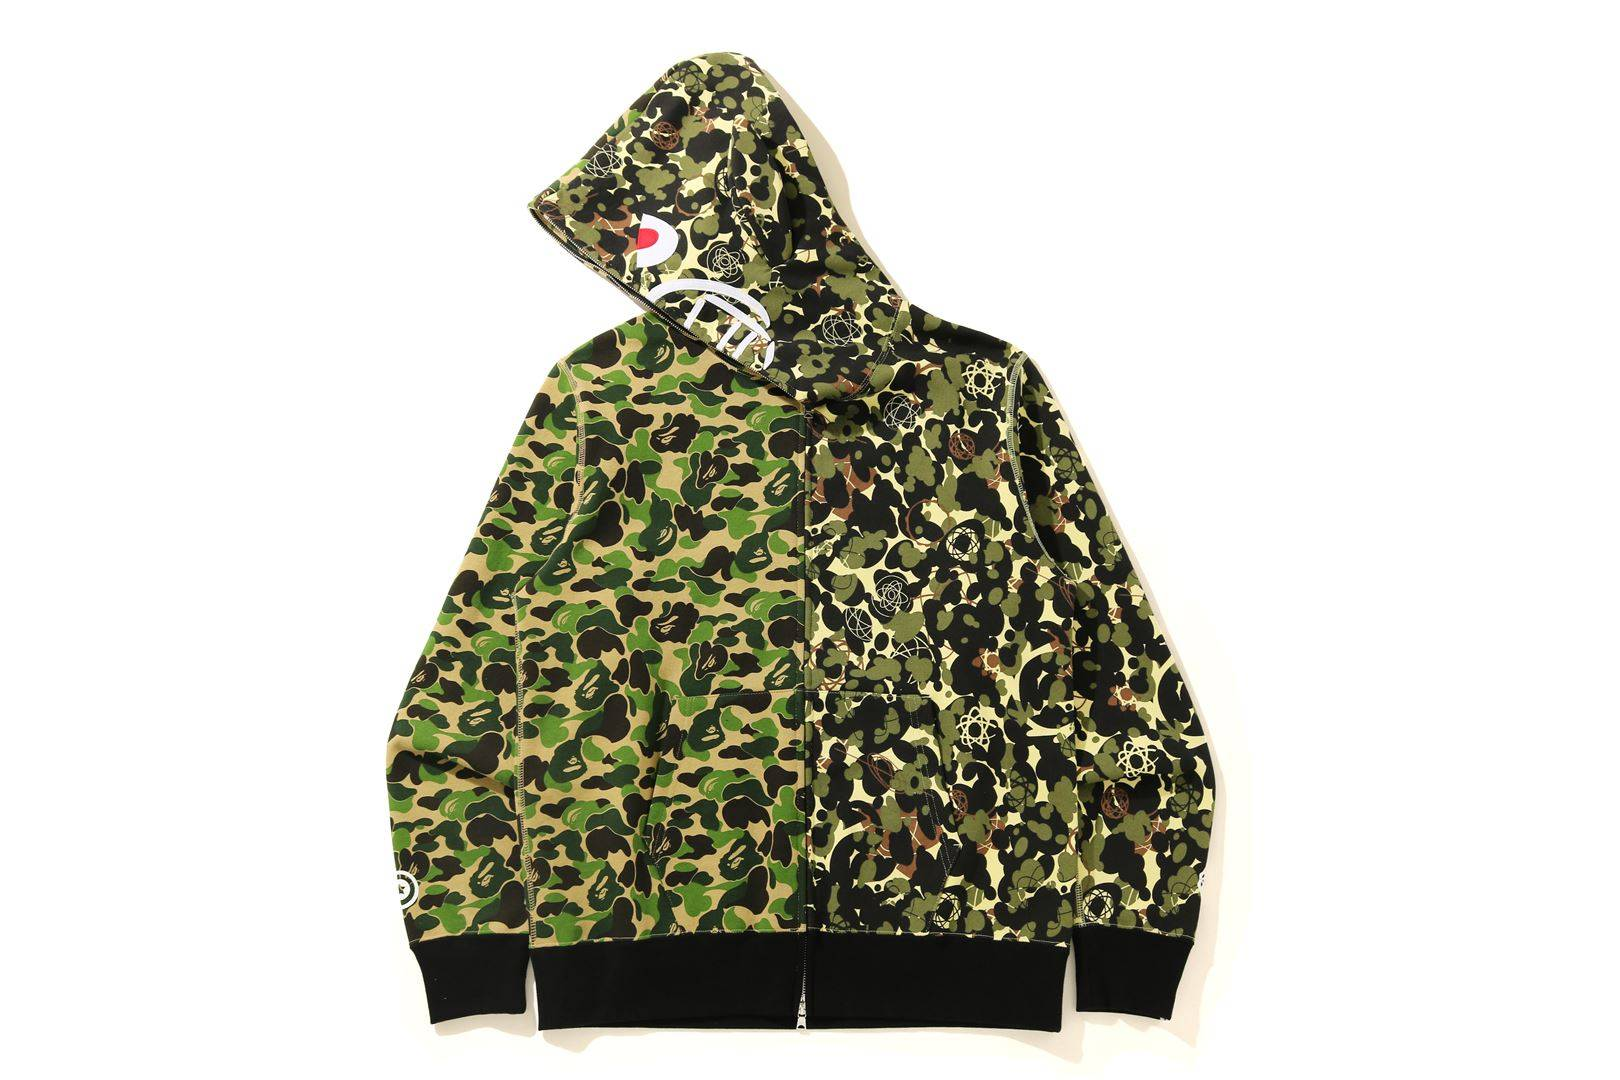 bape-a-bathing-ape-vs-unkle-mo-wax-original-heads-collaboration-20210320